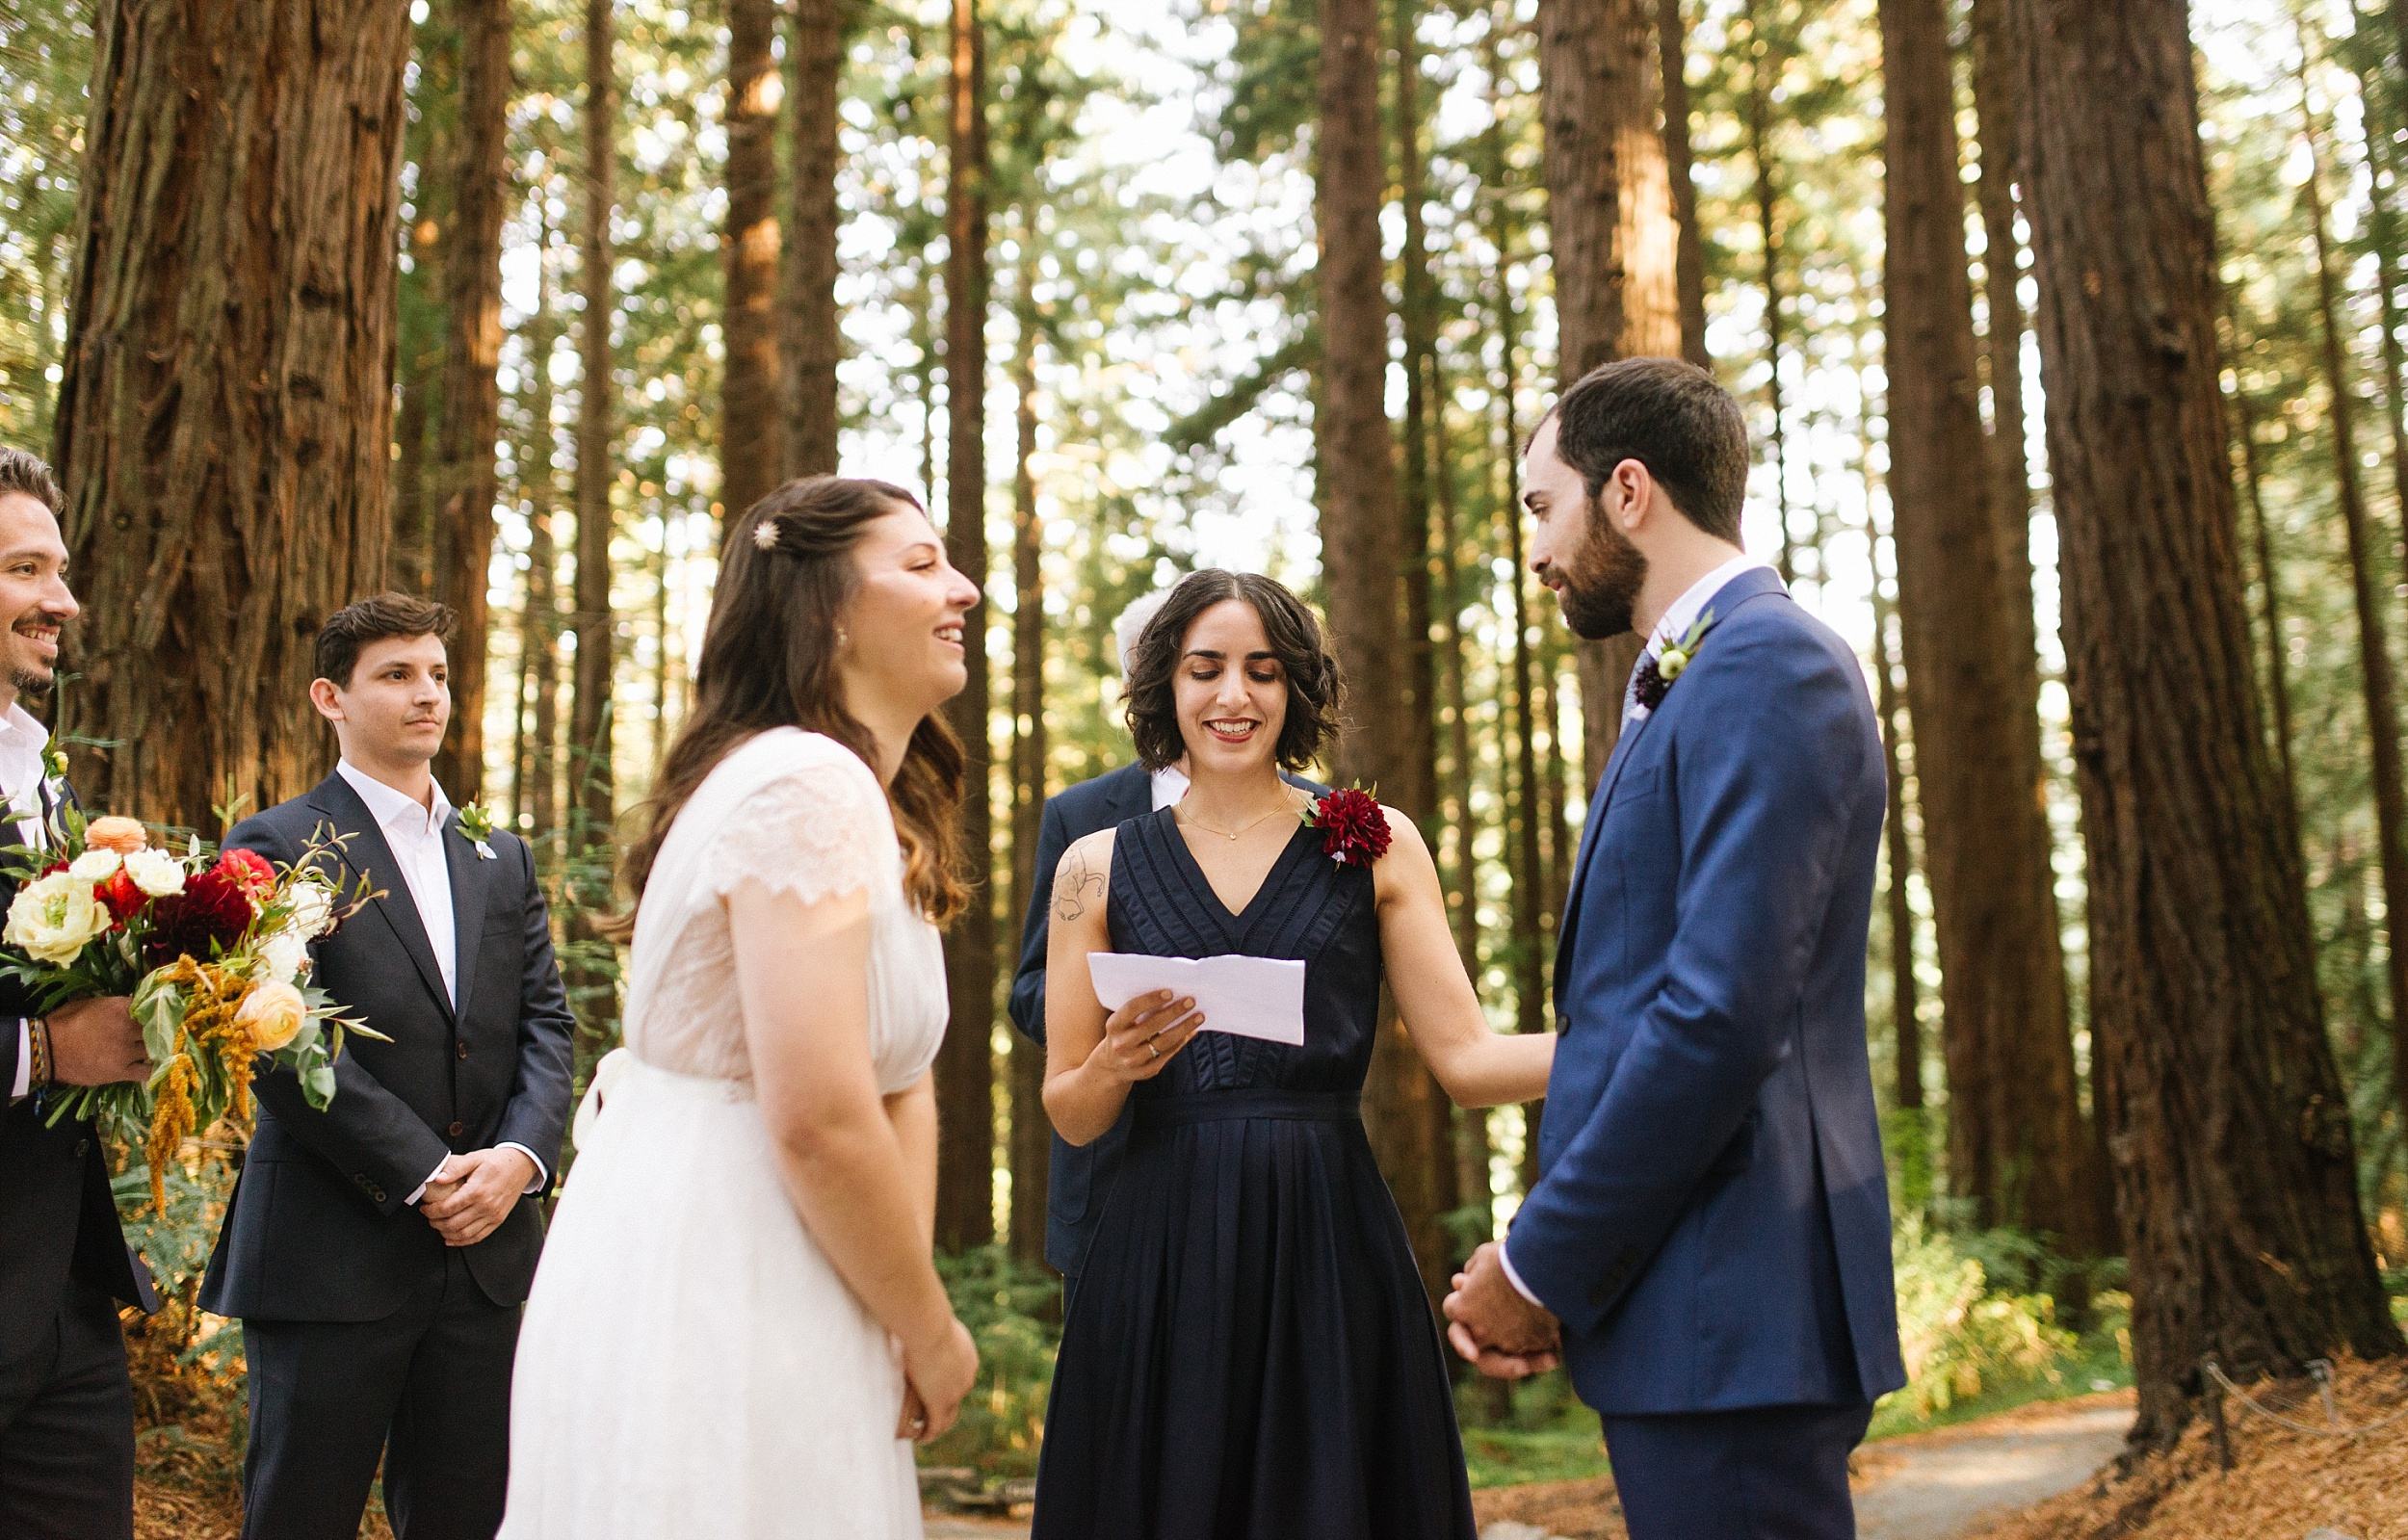 noahhannah_redwoods_botanical_wedding_berkeley_cdp_0034.jpg